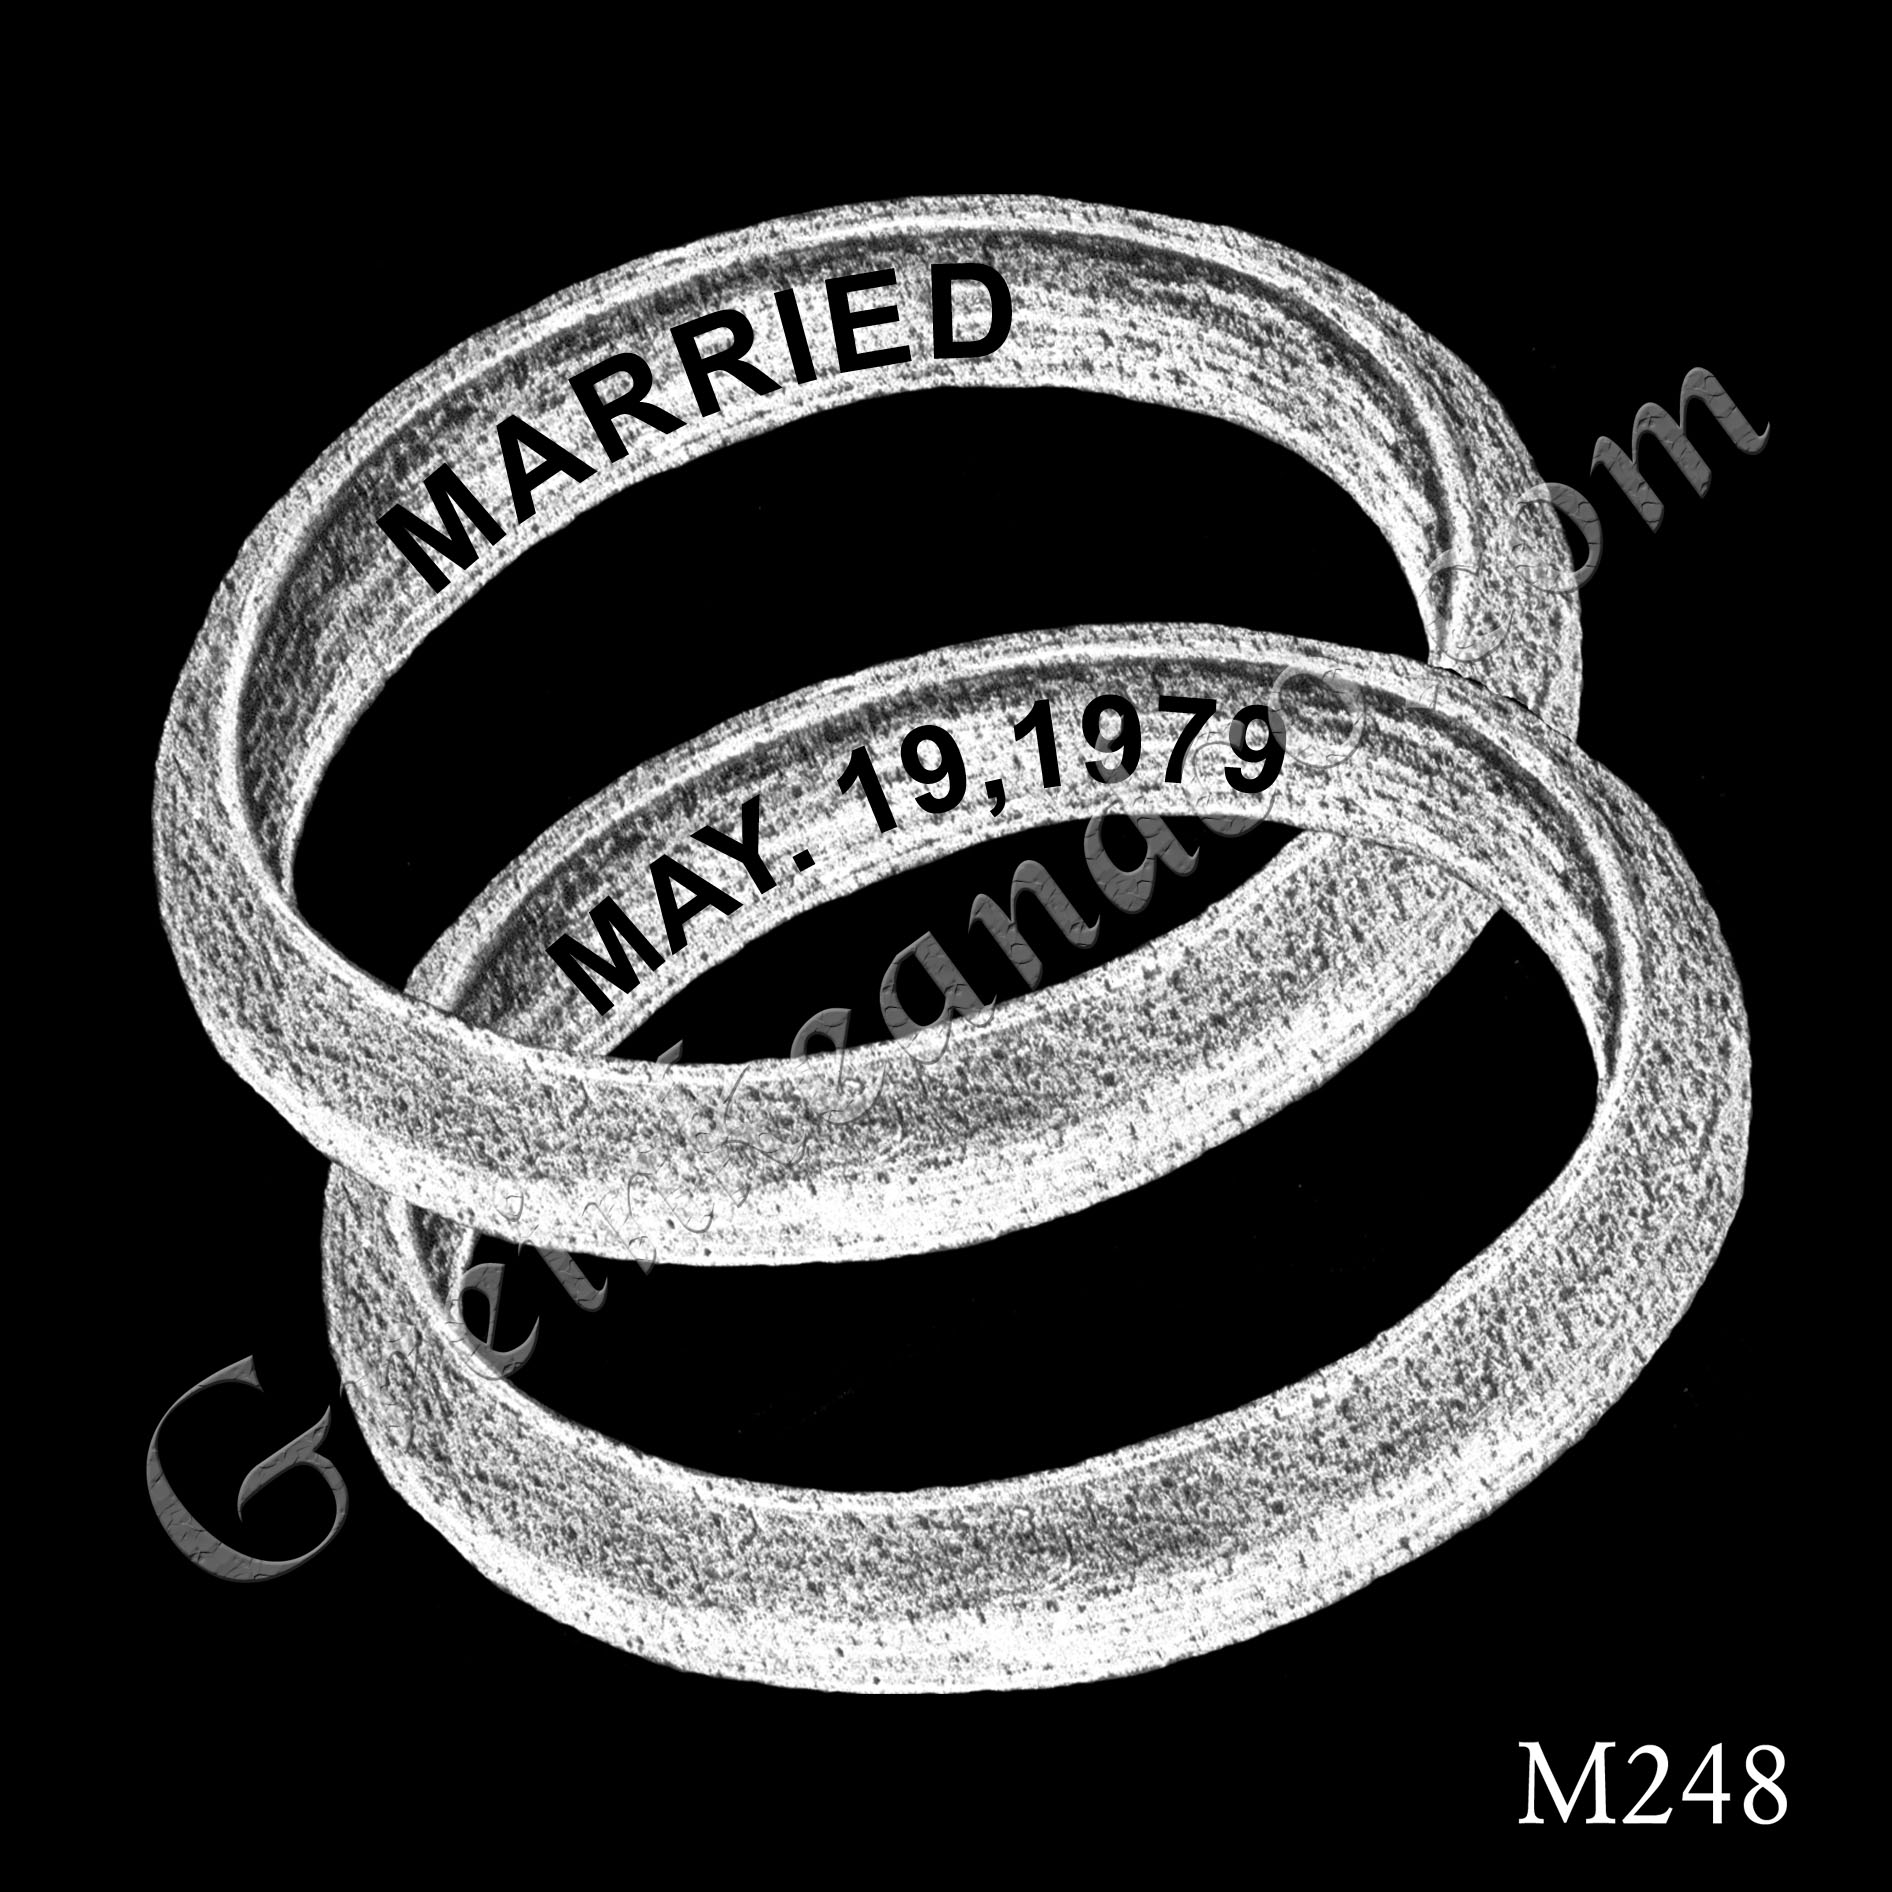 two interlocking wedding bands with date